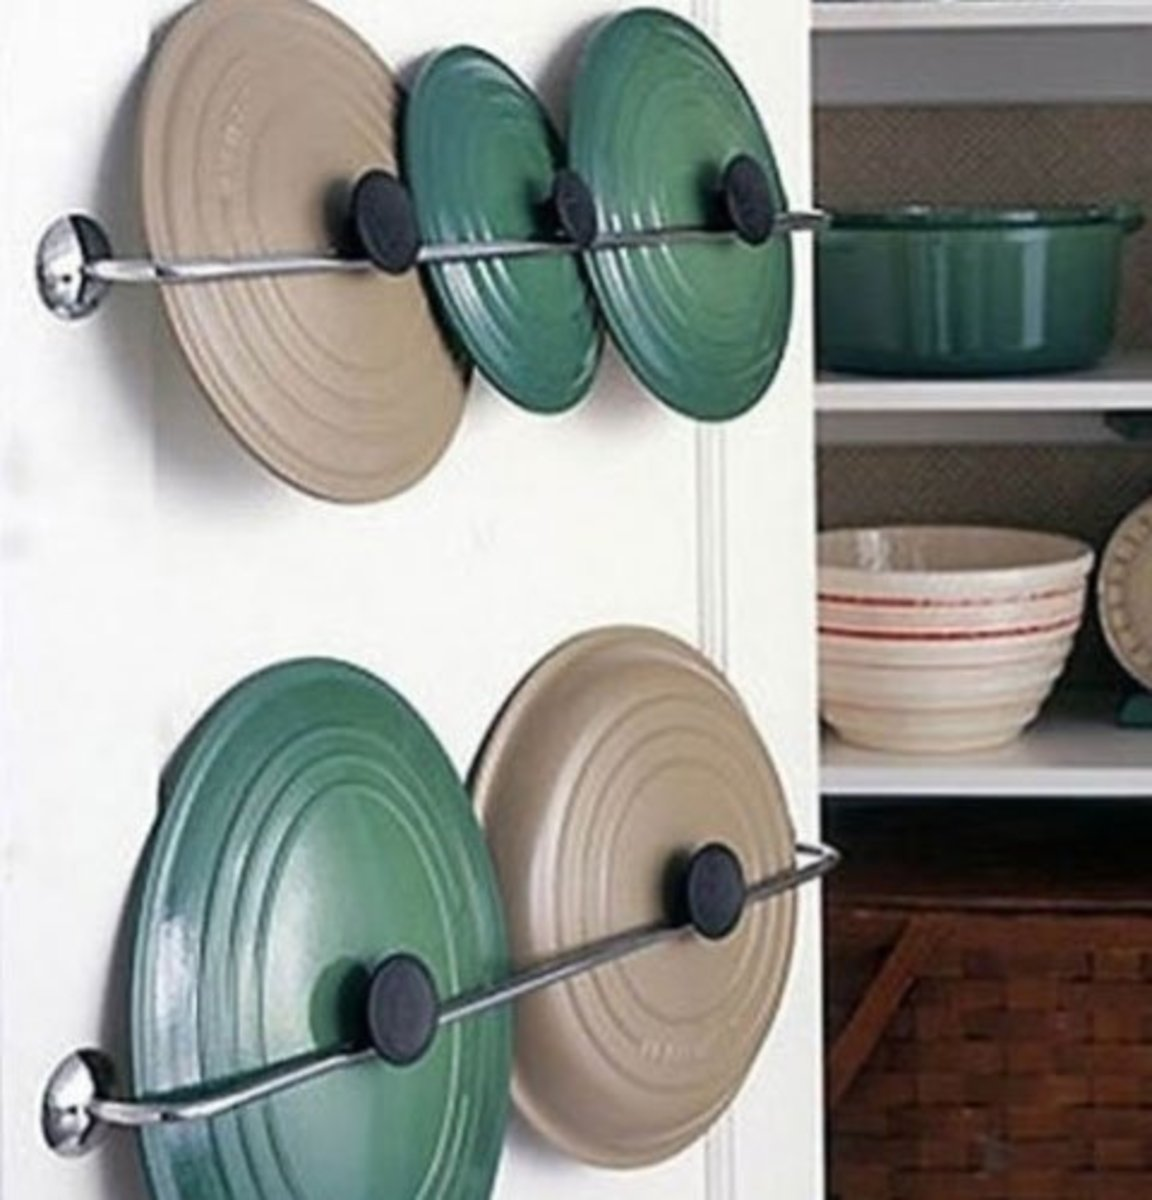 Small Kitchen Organizing Ideas   Click Pic for 20 DIY Kitchen Organization Ideas Upcycle Towel Rails for Pot Lids